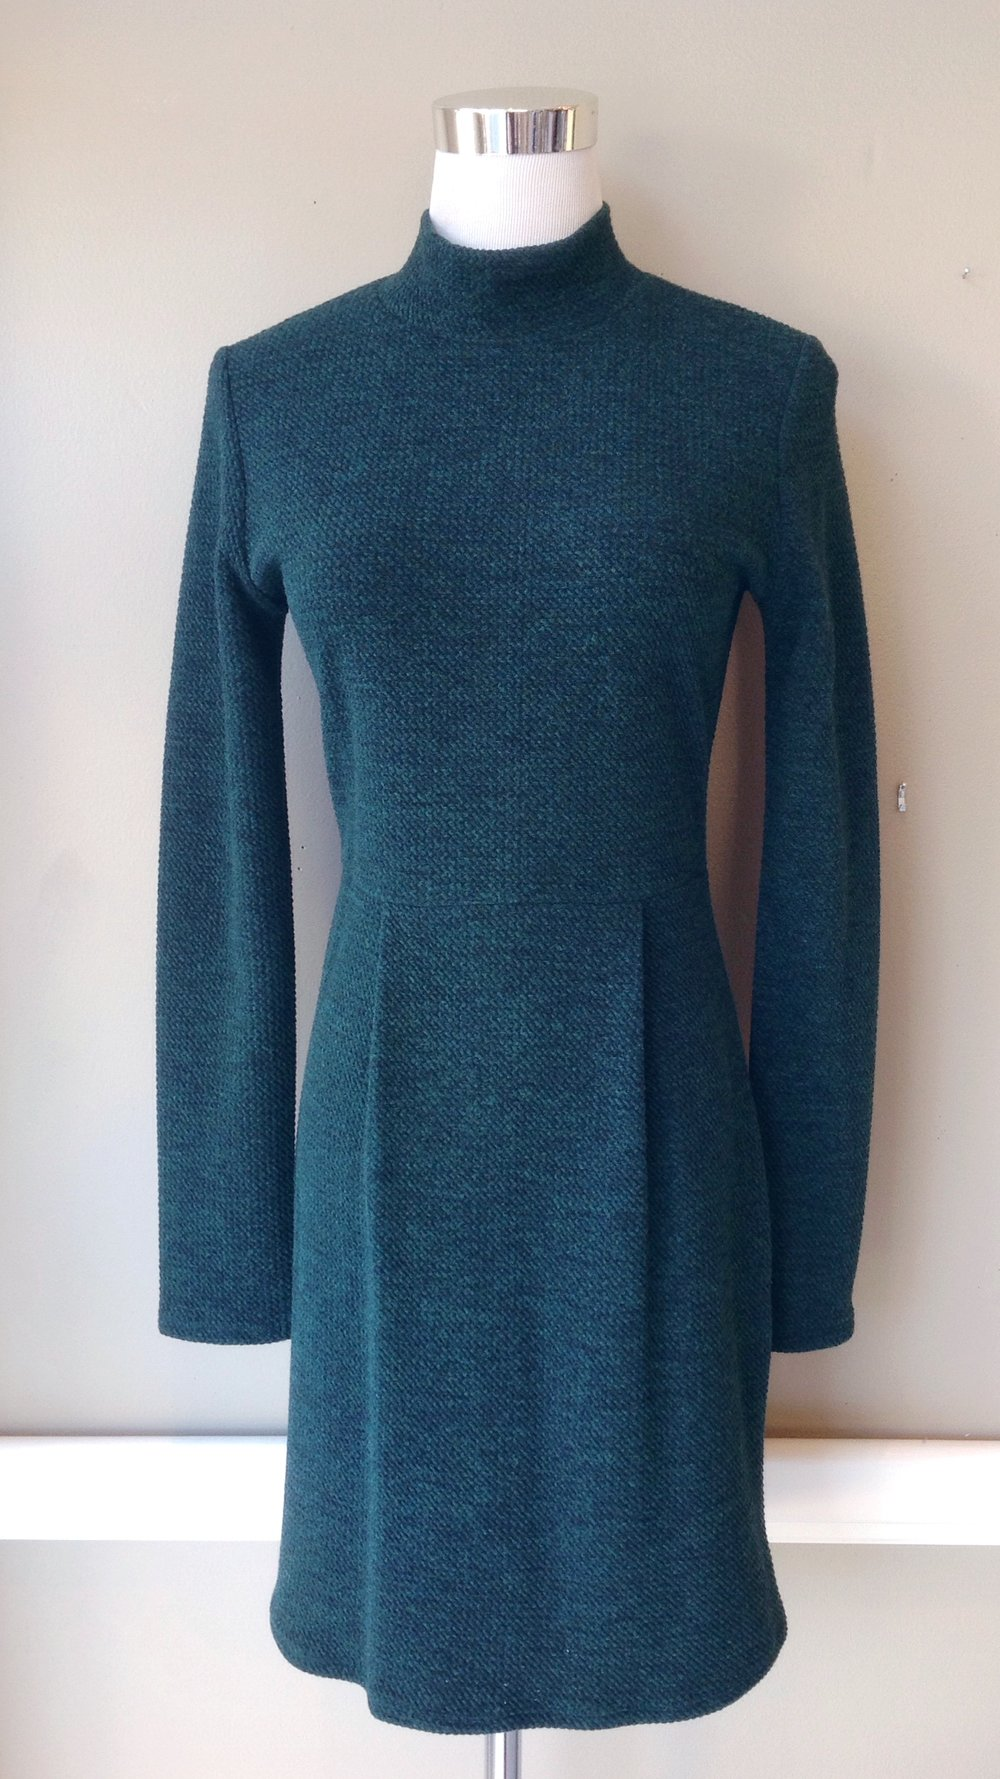 Mock neck knit dress in hunter, $45